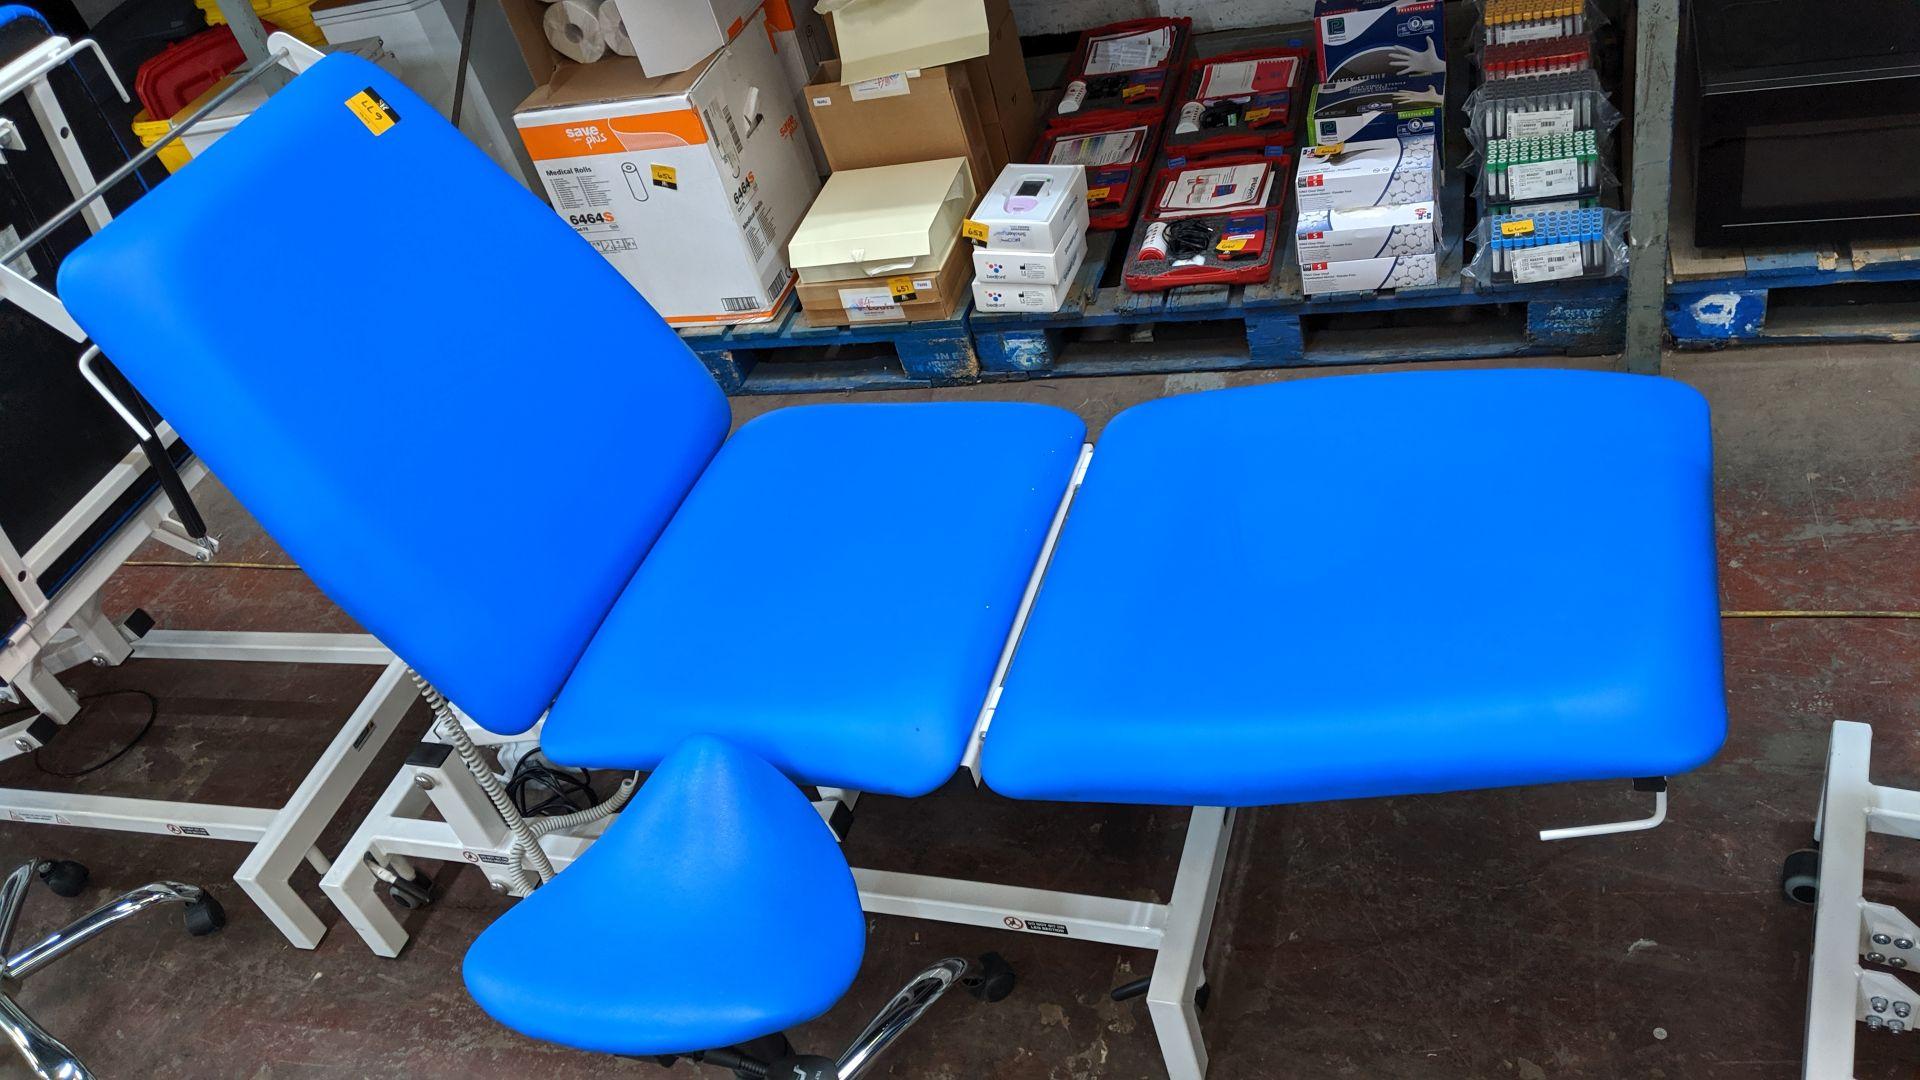 Lot 677 - Sunflower Medical Equipment mobile electrically operated padded examination table with wired linak